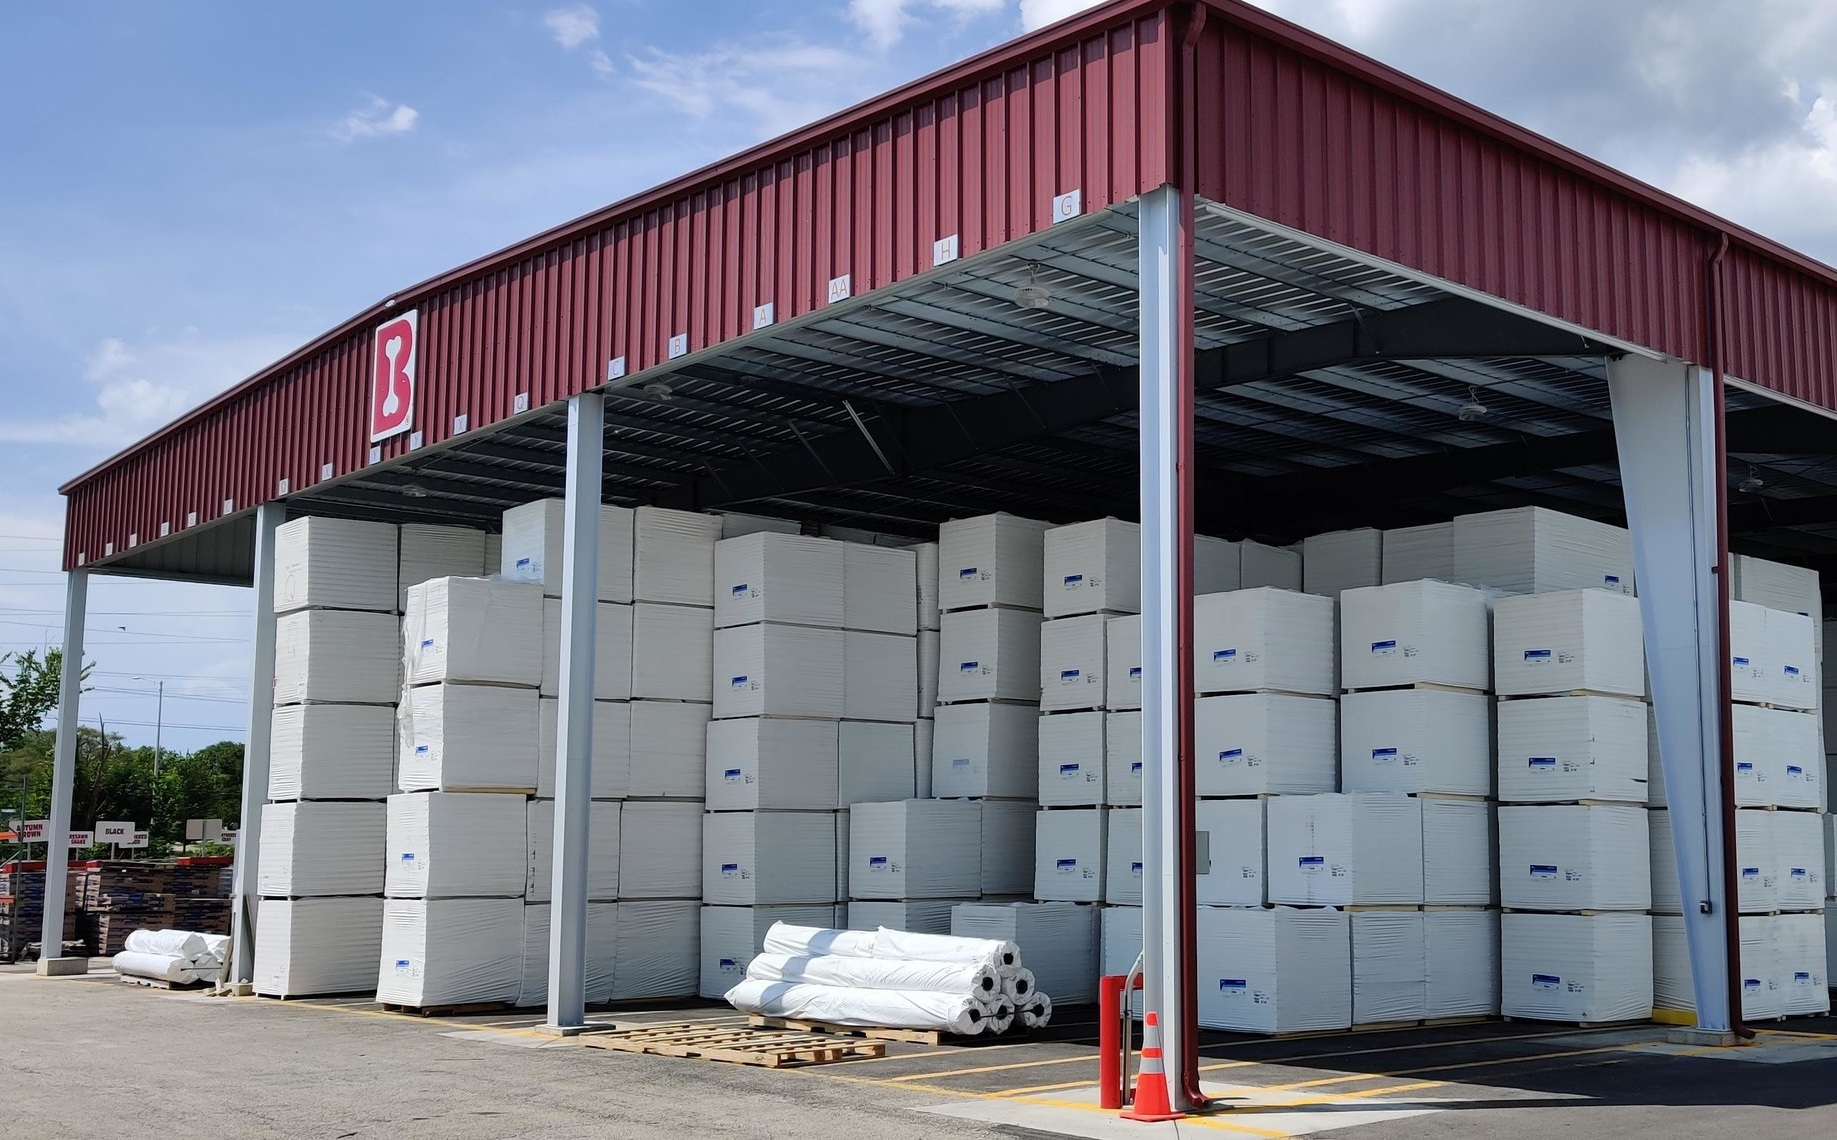 Outside Storage - New in 2019 is our outside storage facility. We are committed to giving the best and quality products to our roofers- and that means dry material. We invest in our facilities to ensure weather doesn't impact the quality of our material.The new storage facility can hold up to 60 trailer loads of polysio. This means we can stock and store more material than any other supplier in Chicagoland, while protecting that material from the elements.We can almost guarantee what you need is in stock and ready to ship same day.